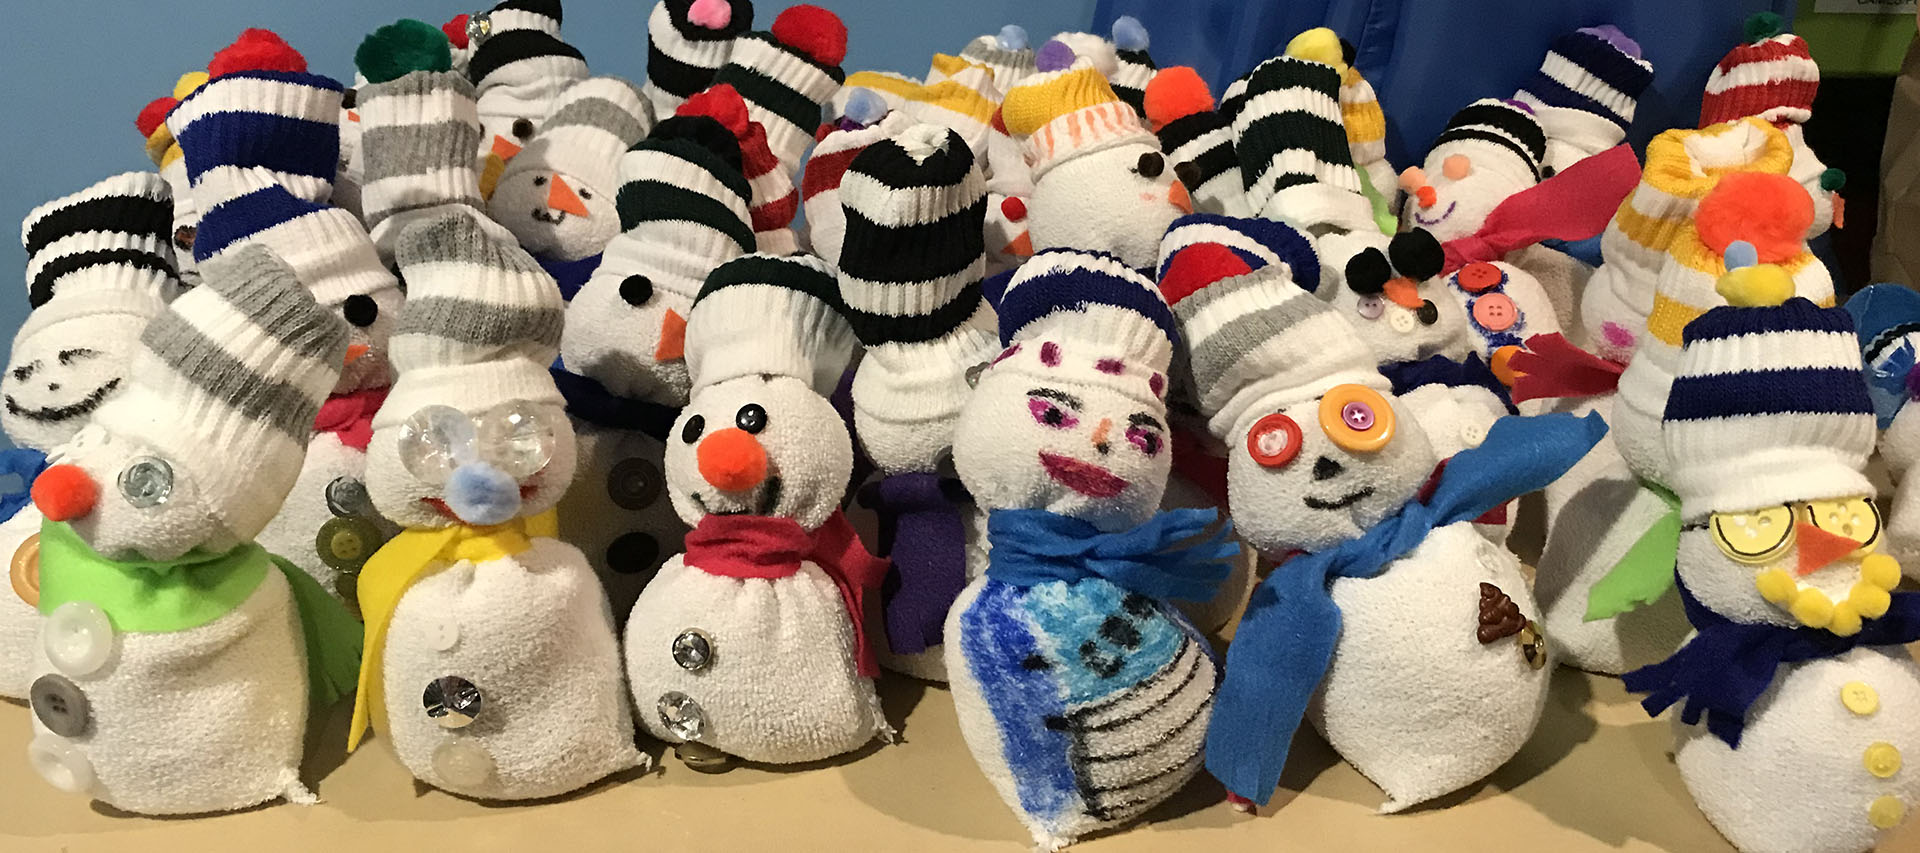 MLK Day of Service, Snowmen for the Children's Inn at NIH